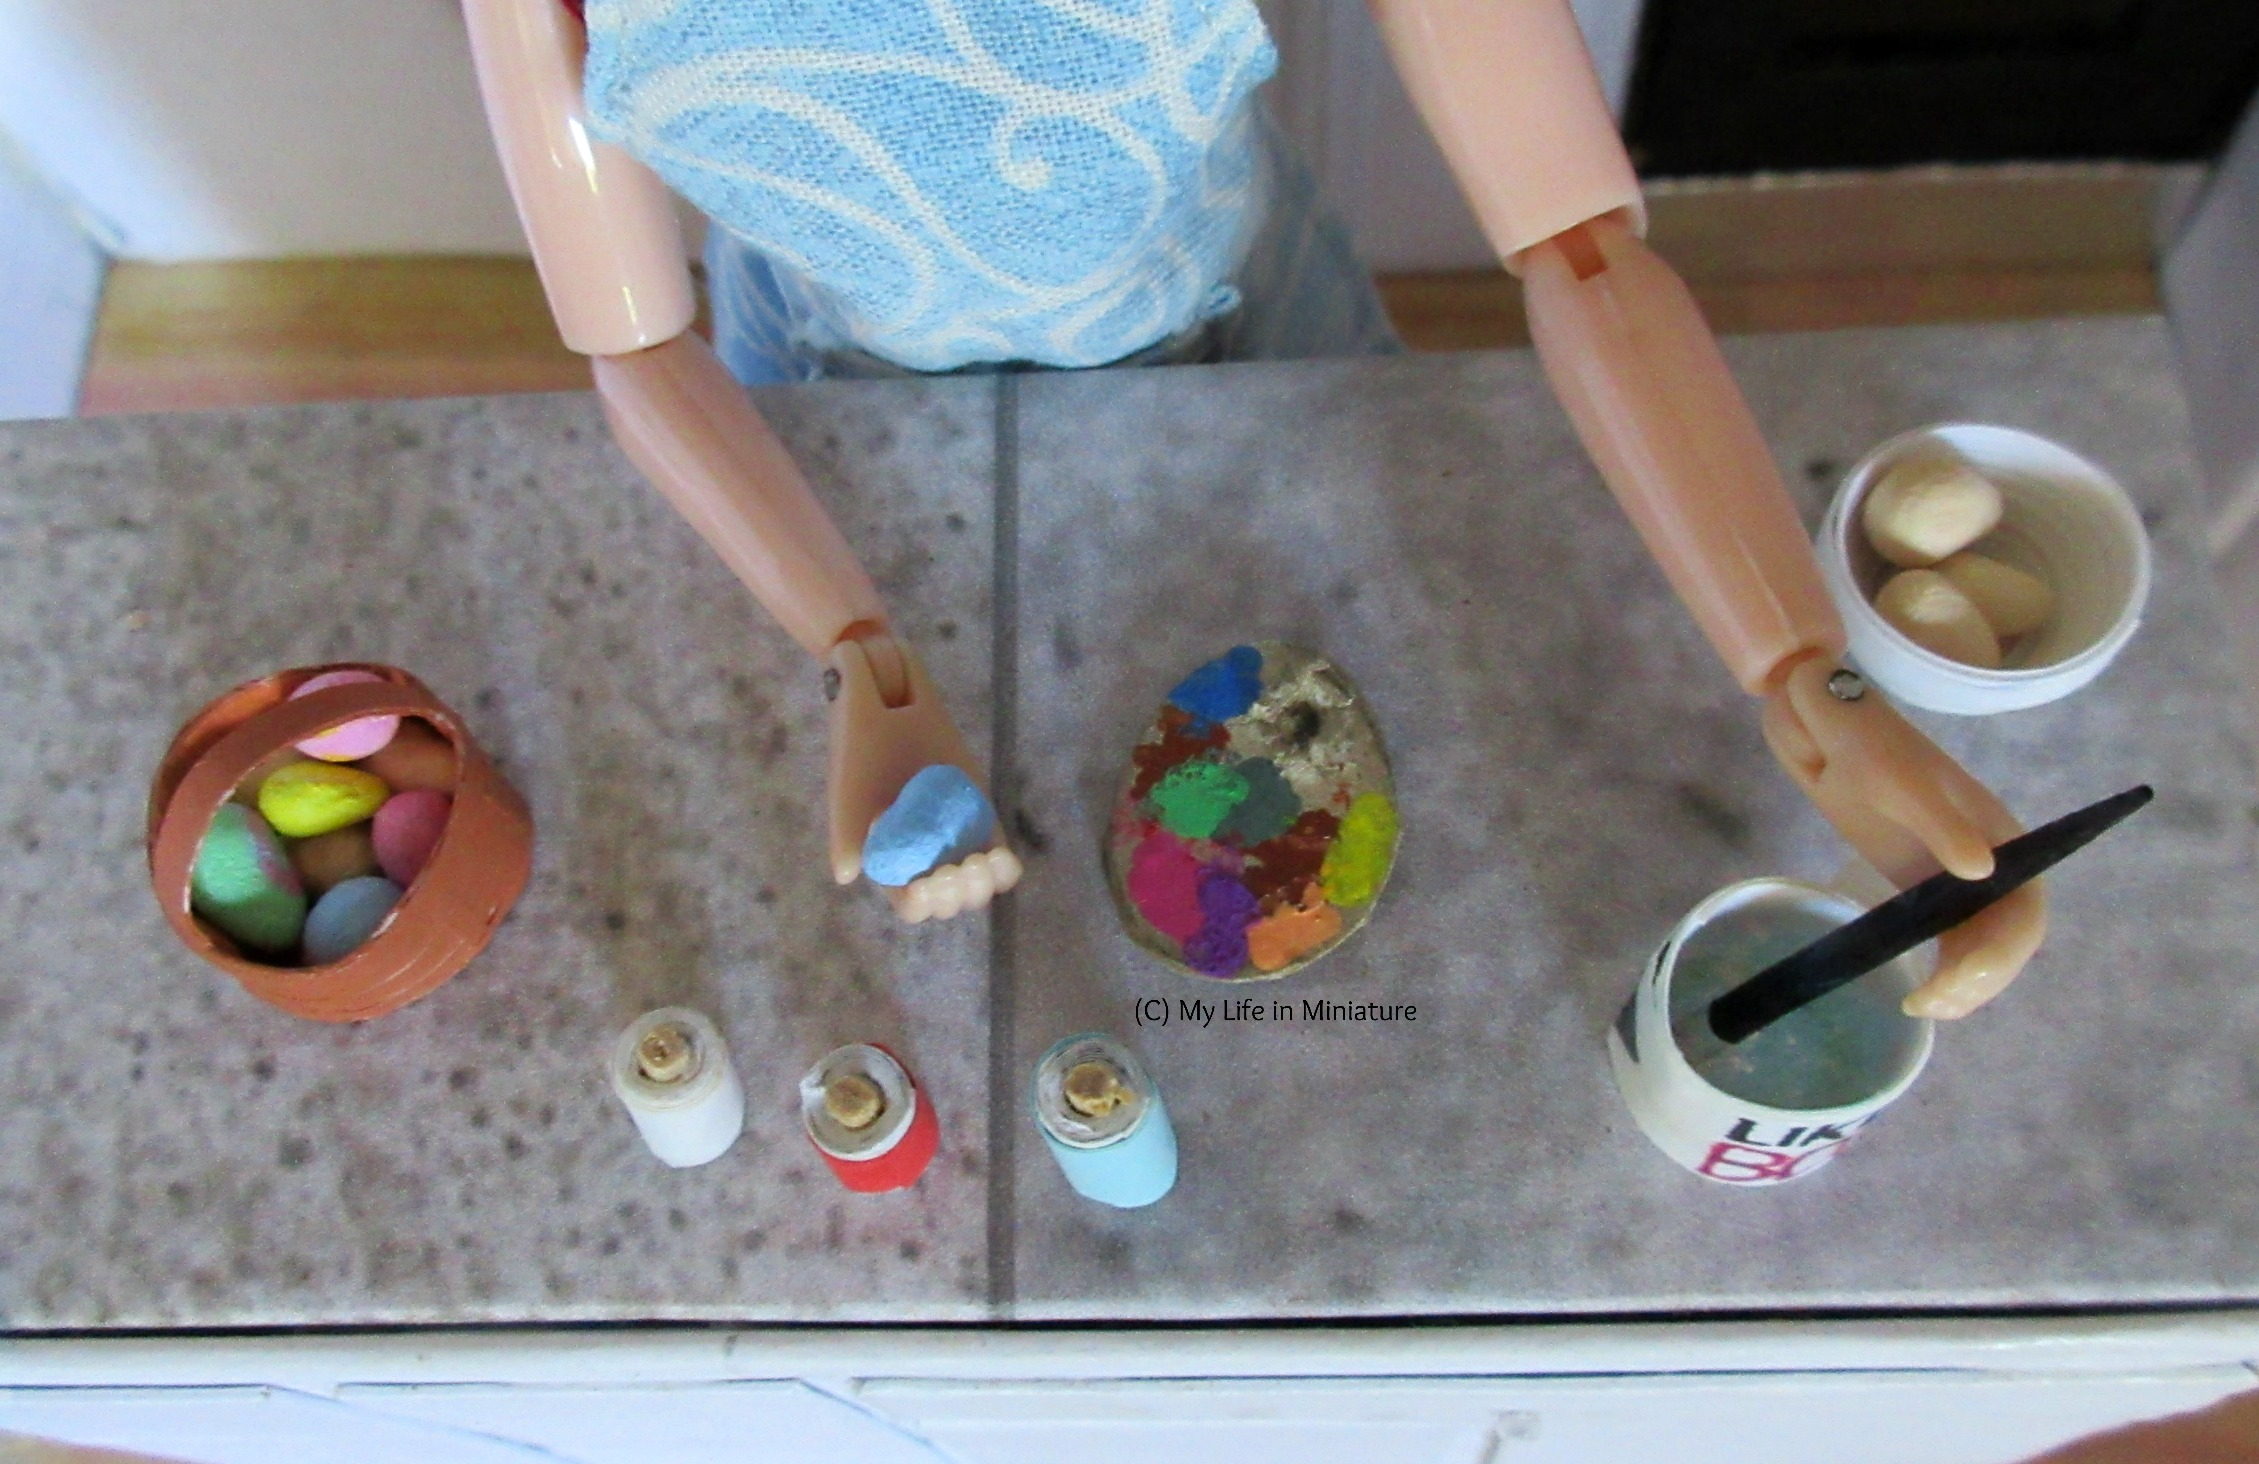 Shot from above of the previous scene. One hand holds a blue egg, and the other holds a paintbrush in a cup of water.